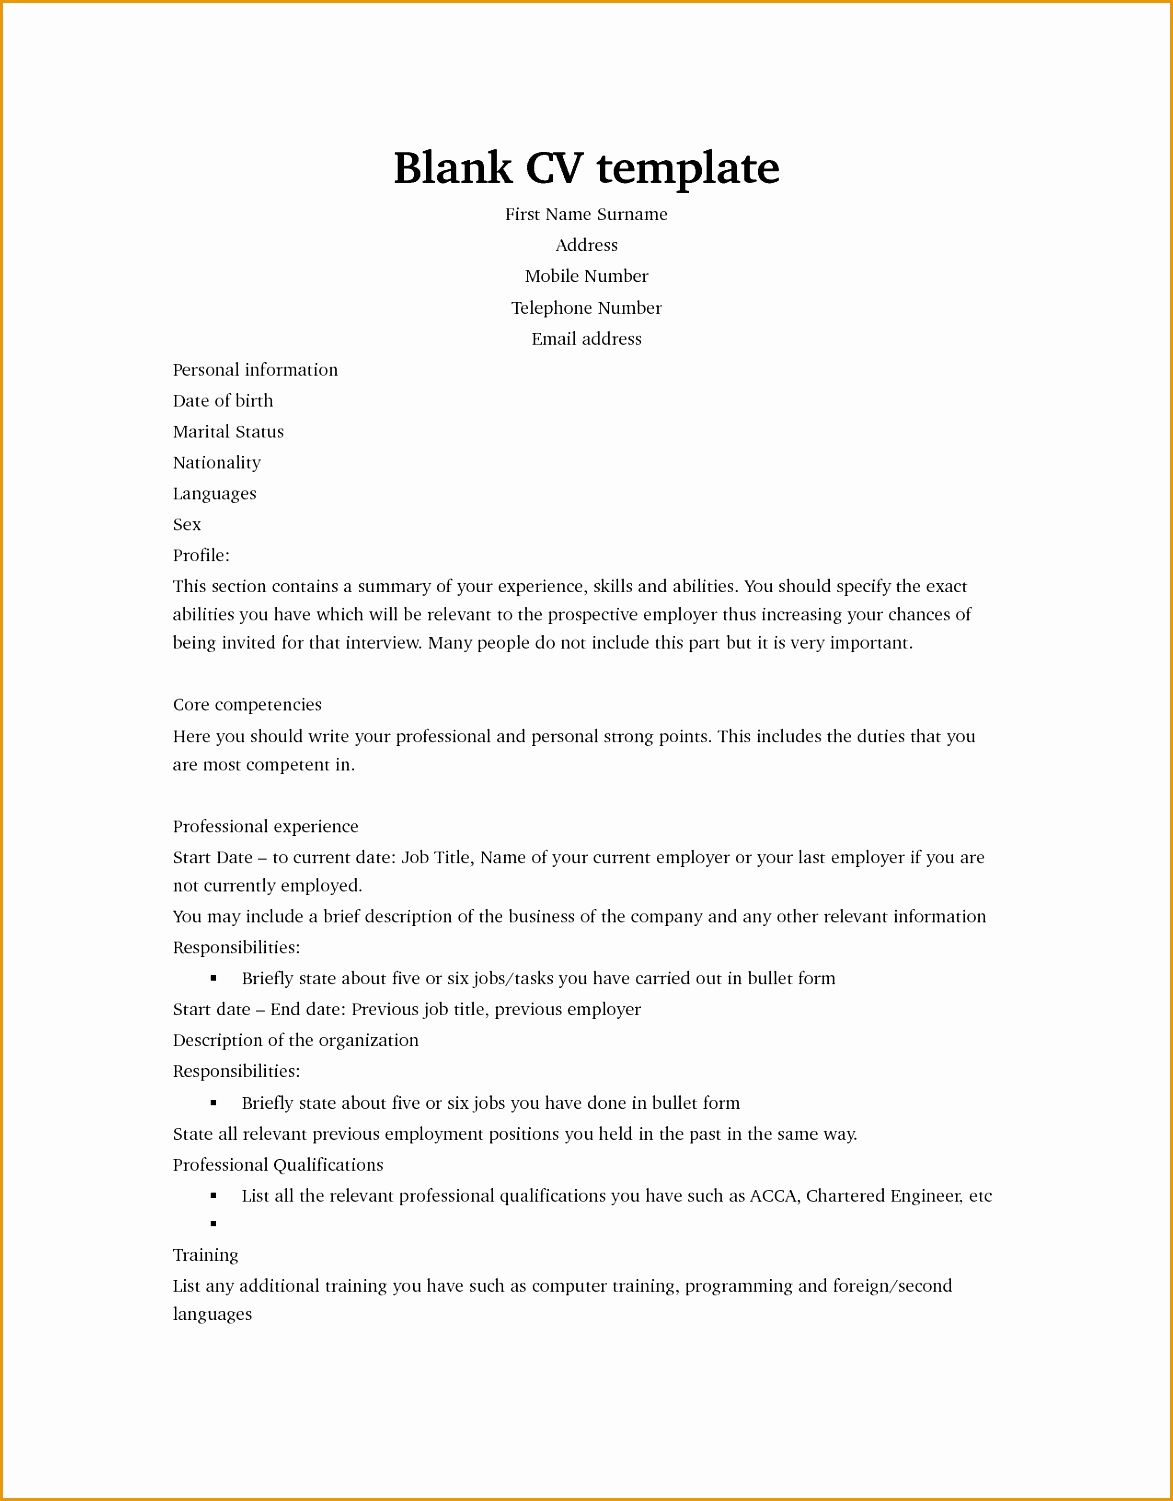 Blank Cv template Resume Builder